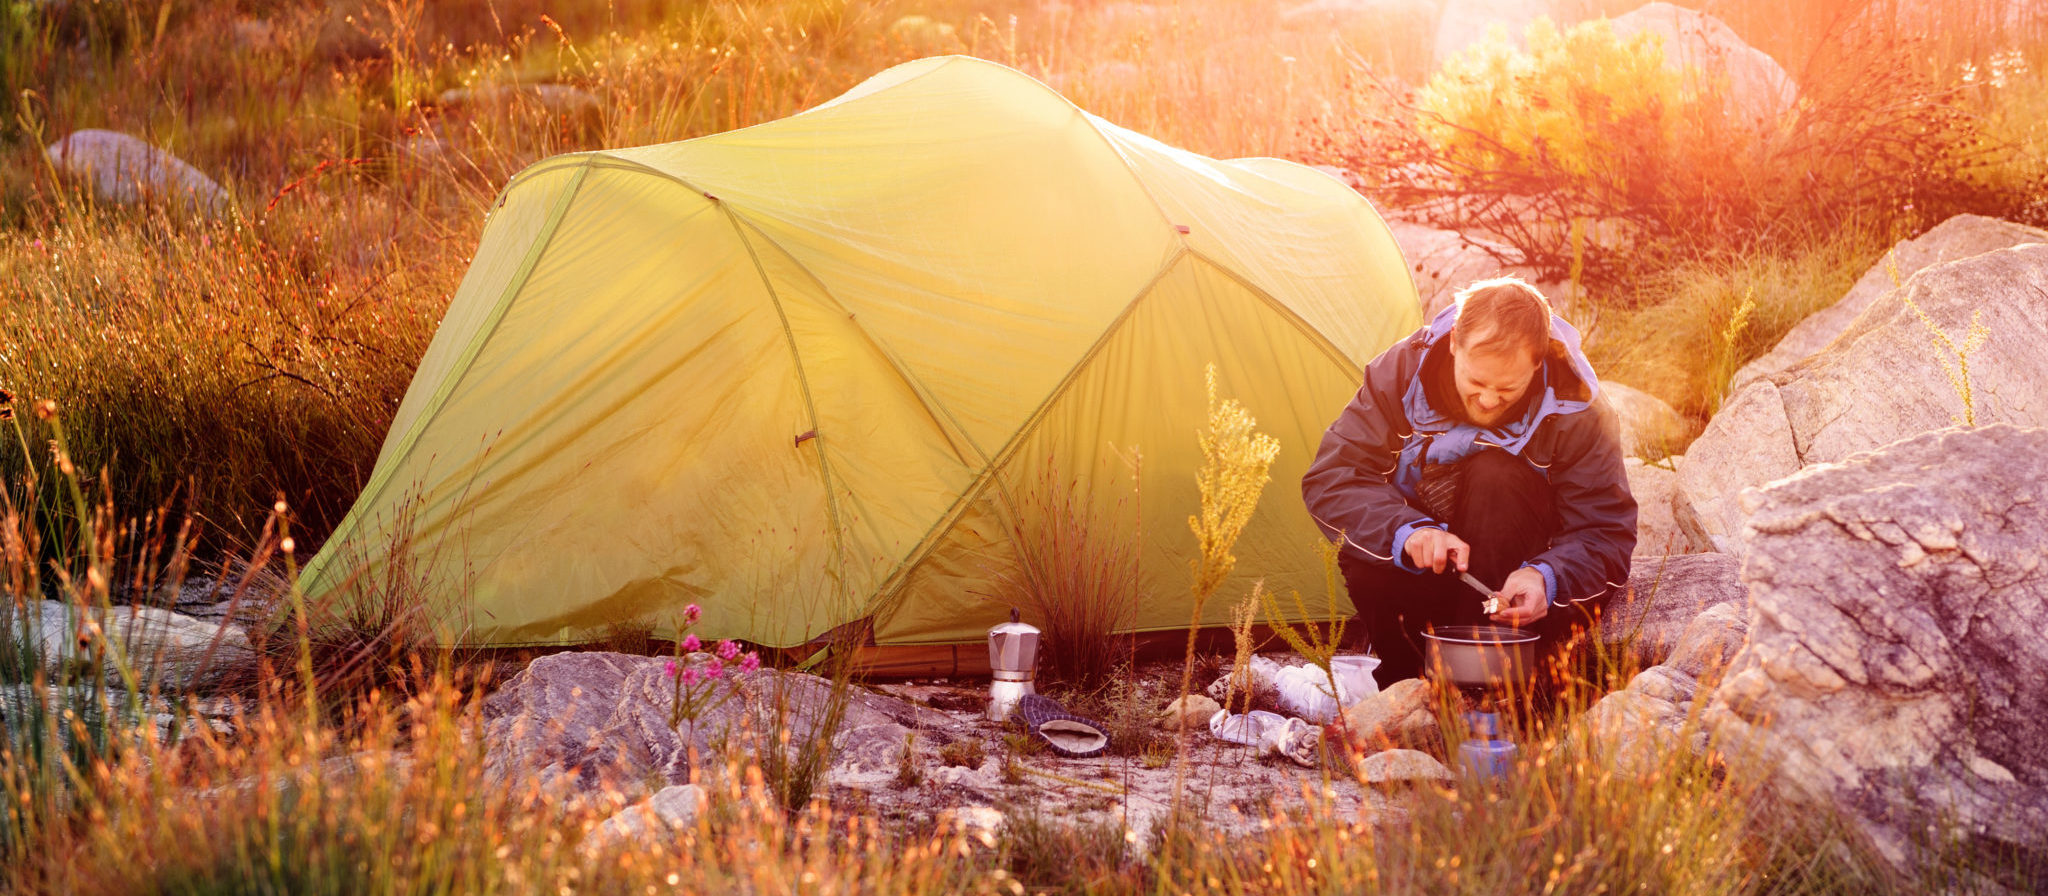 If you are serious about making the move to life in a tent, you will need to carefully consider where you wish to live.